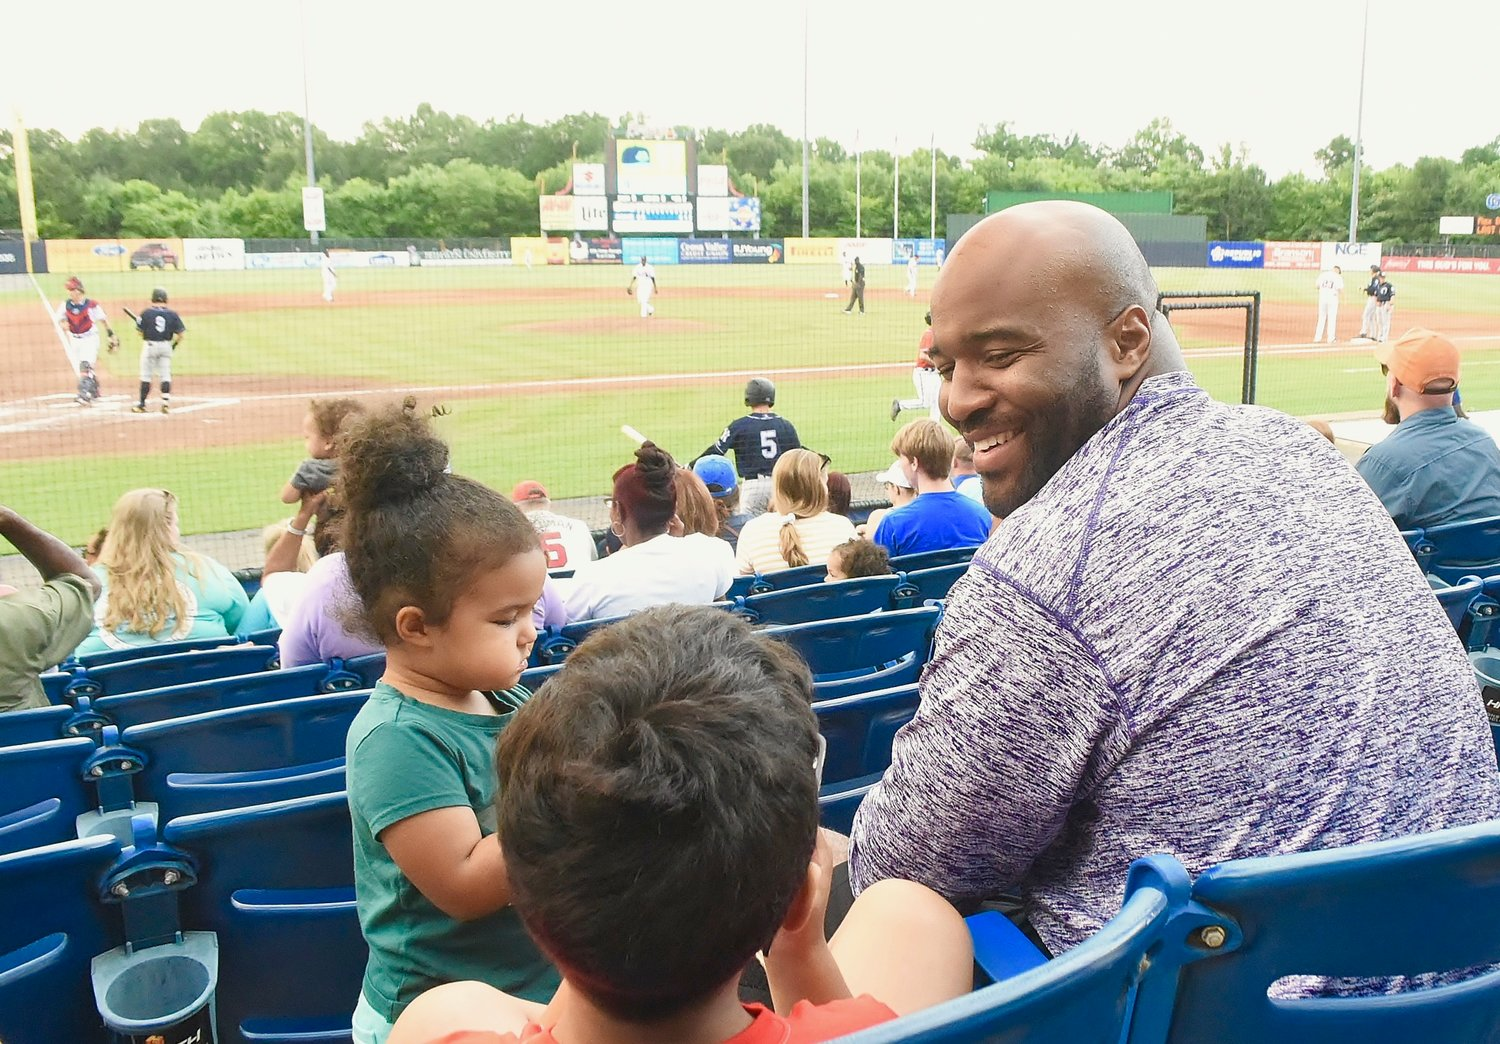 Cartersville High School co-offensive coordinator Reggie Perkins and his family were on hand at State Mutual Stadium in Rome Tuesday night to watch CHS alumnus Anthony Seigler play for the Charleston RiverDogs against the Rome Braves.